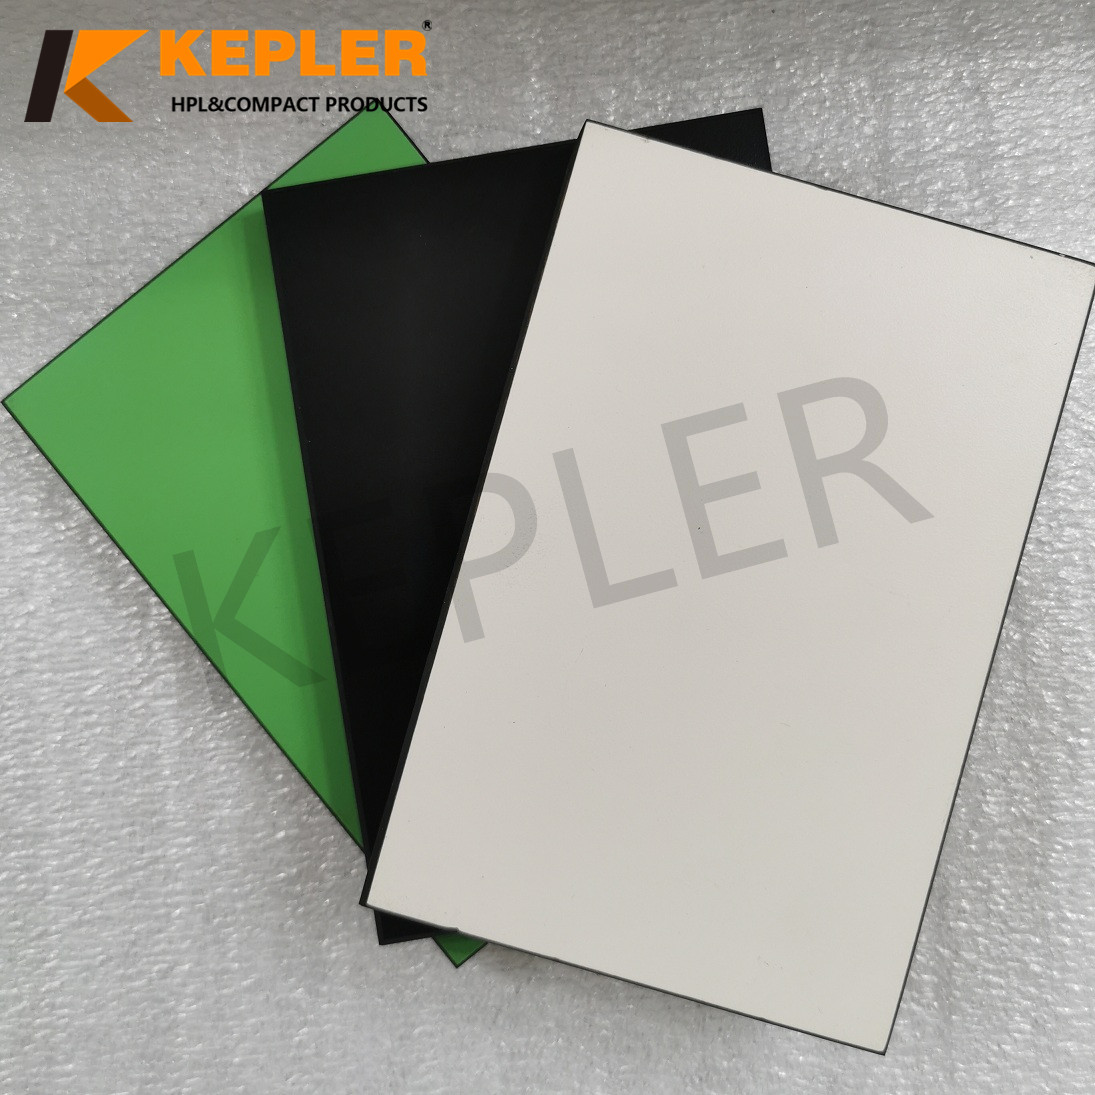 Kepler HPL Compact Laminate Board for Home Decoration